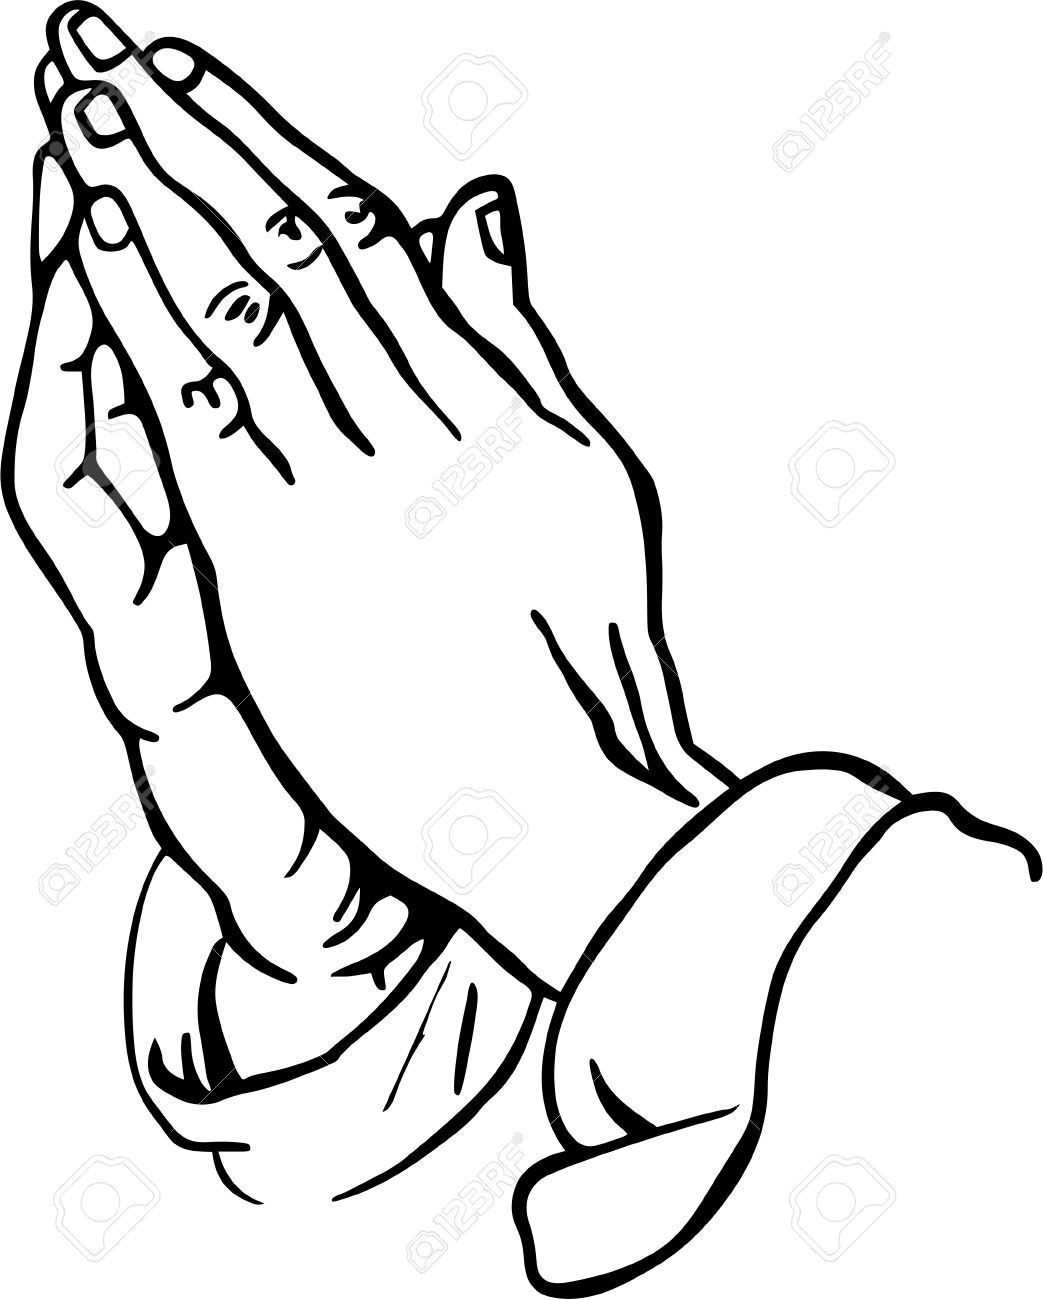 10 Best Images Of Praying Hands FULL HD 1080p For PC Background